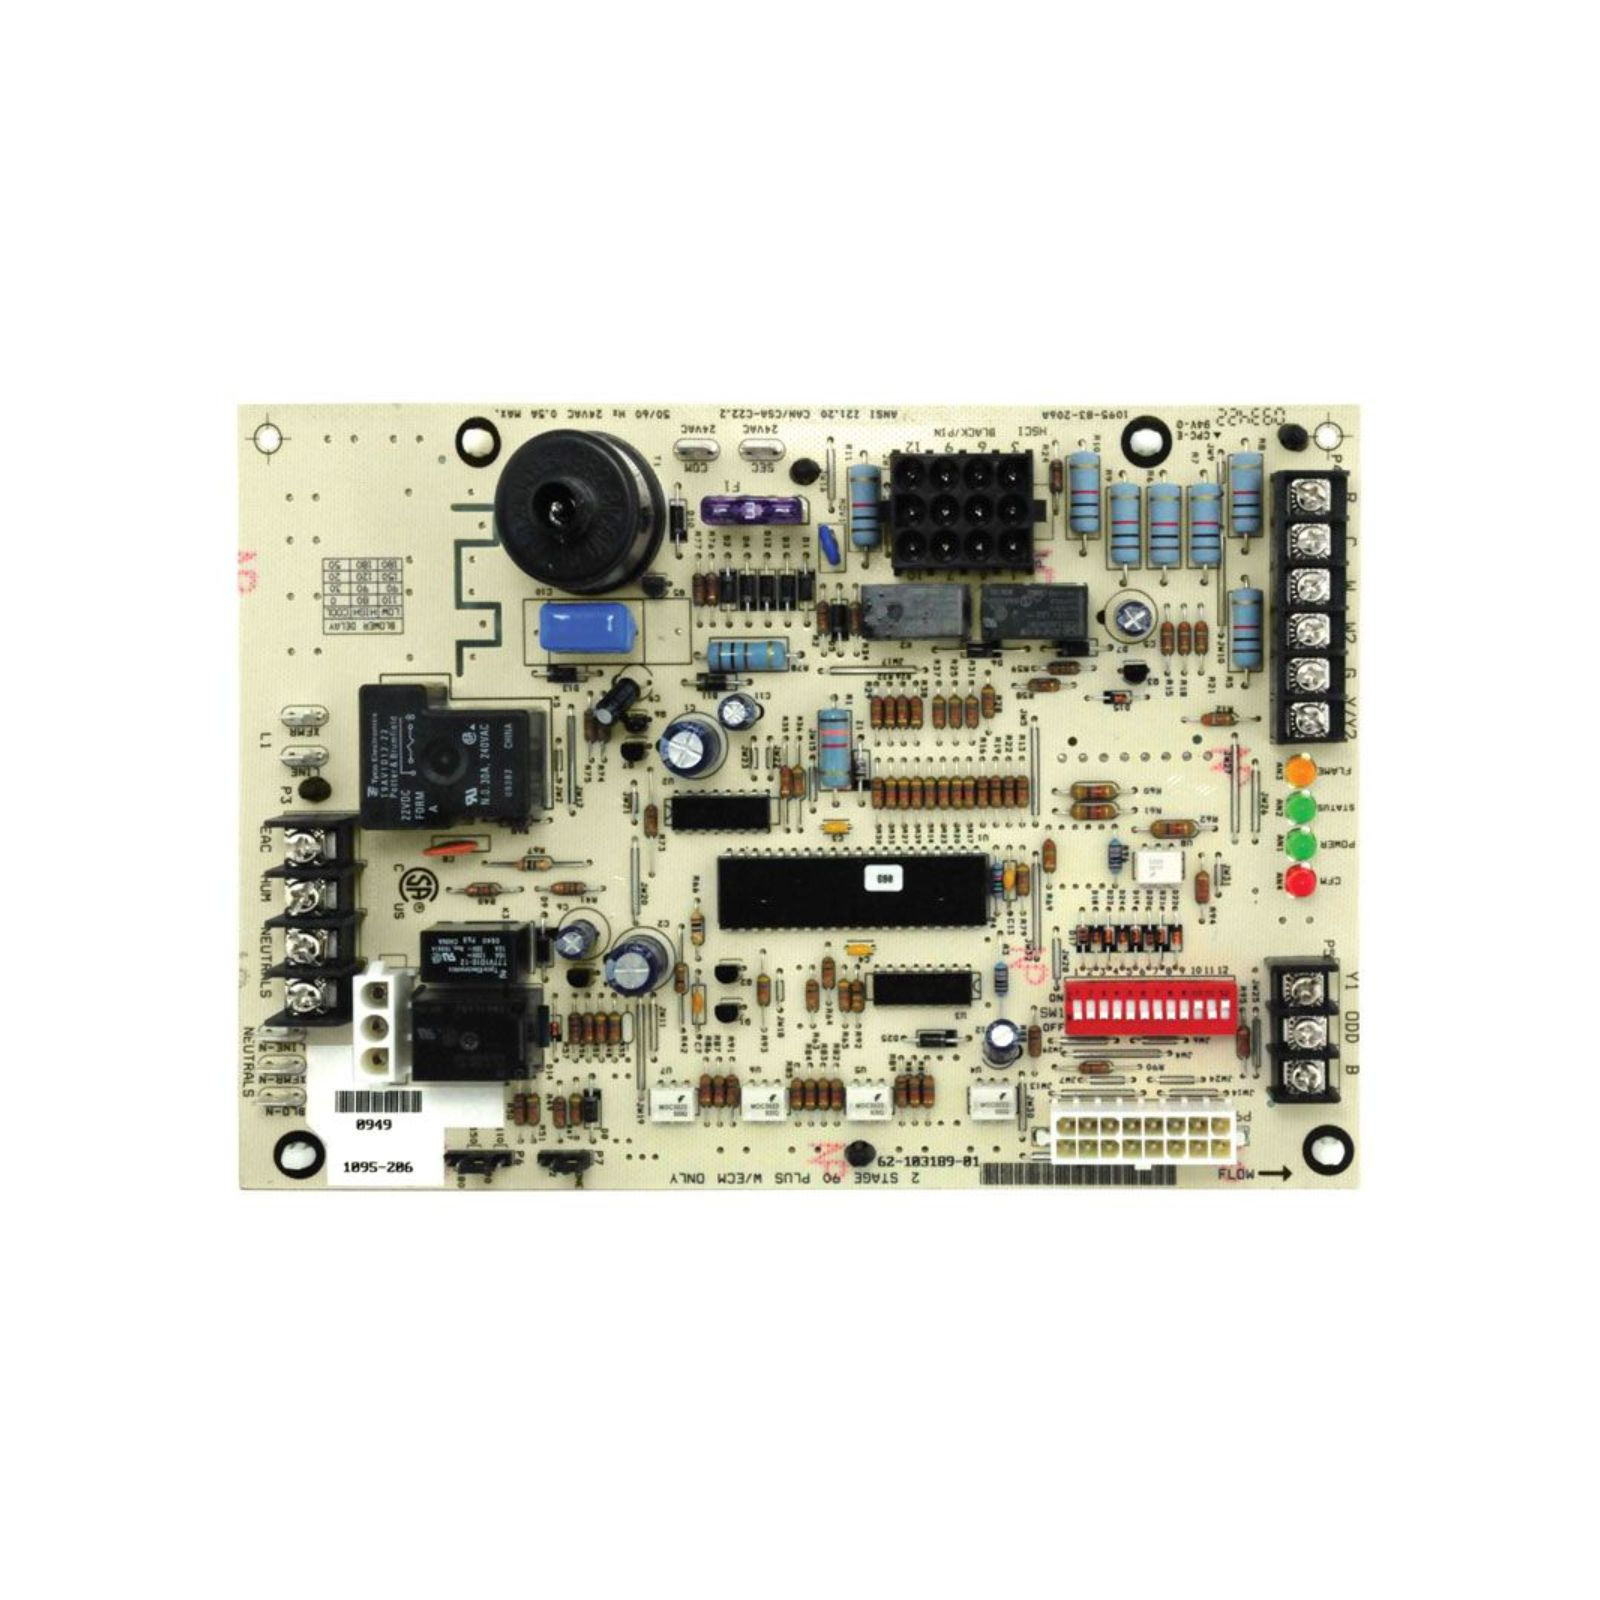 UTEC 62-103189-01 - Integrated Furnace Control Board (IFC)